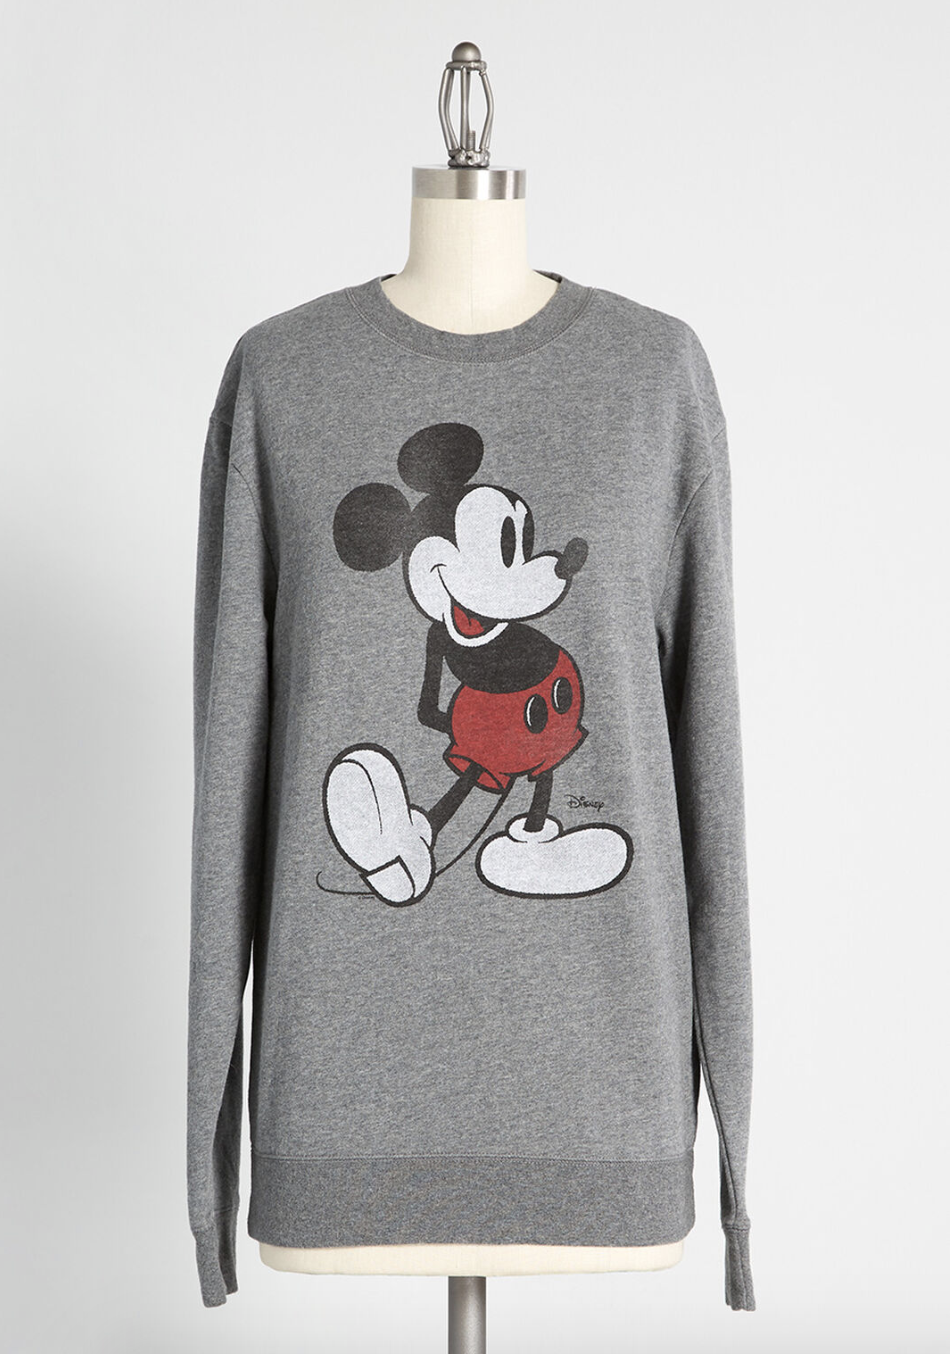 A gray sweater with a retro Mickey Mouse on it